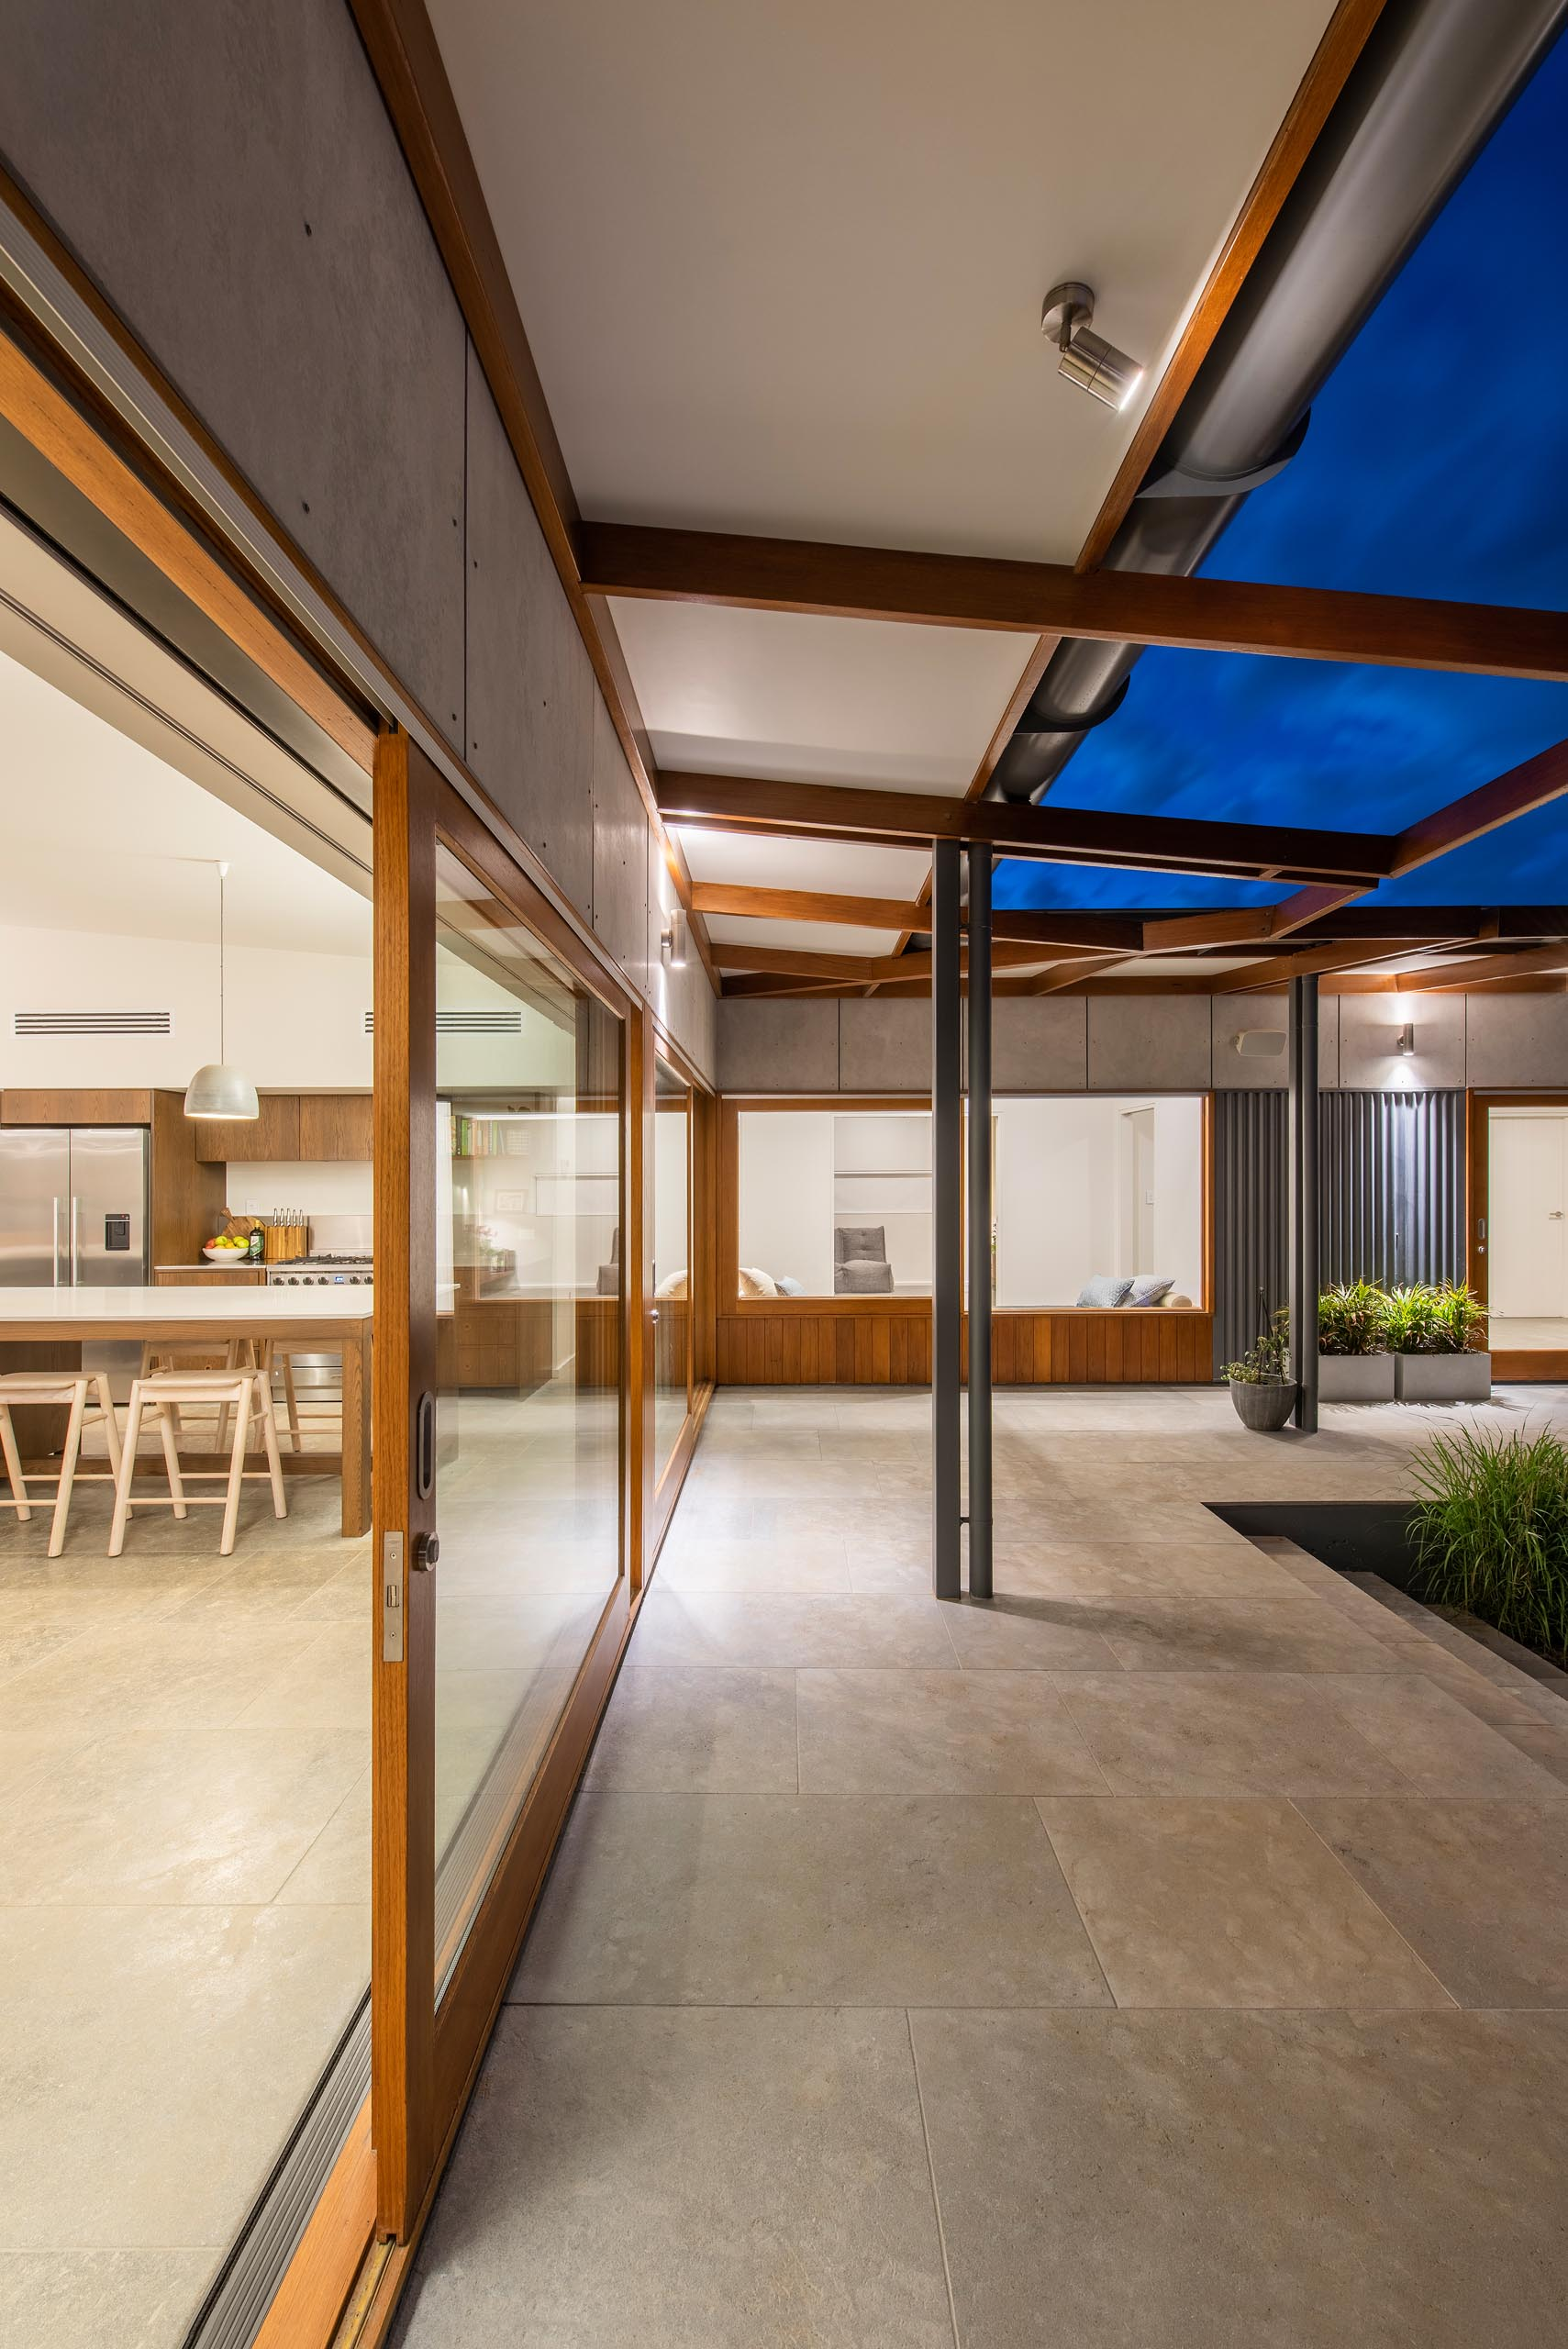 Wood-framed sliding glass doors open the living spaces to a wrap around patio.